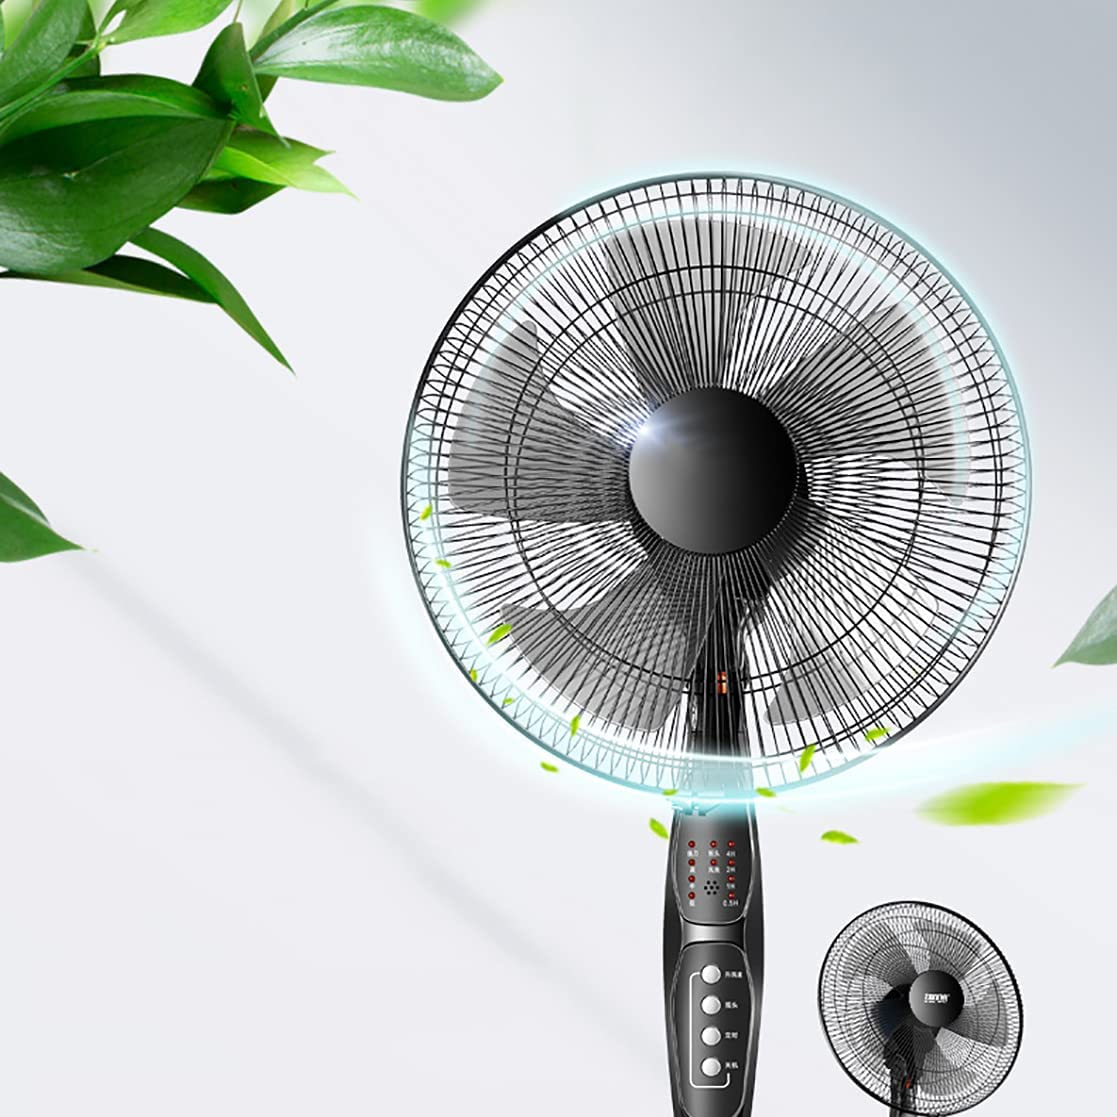 WQF 16Inch Oscillating Fan Manufacturer Import regenerated product 4 with Co Speeds Remote Pedestal